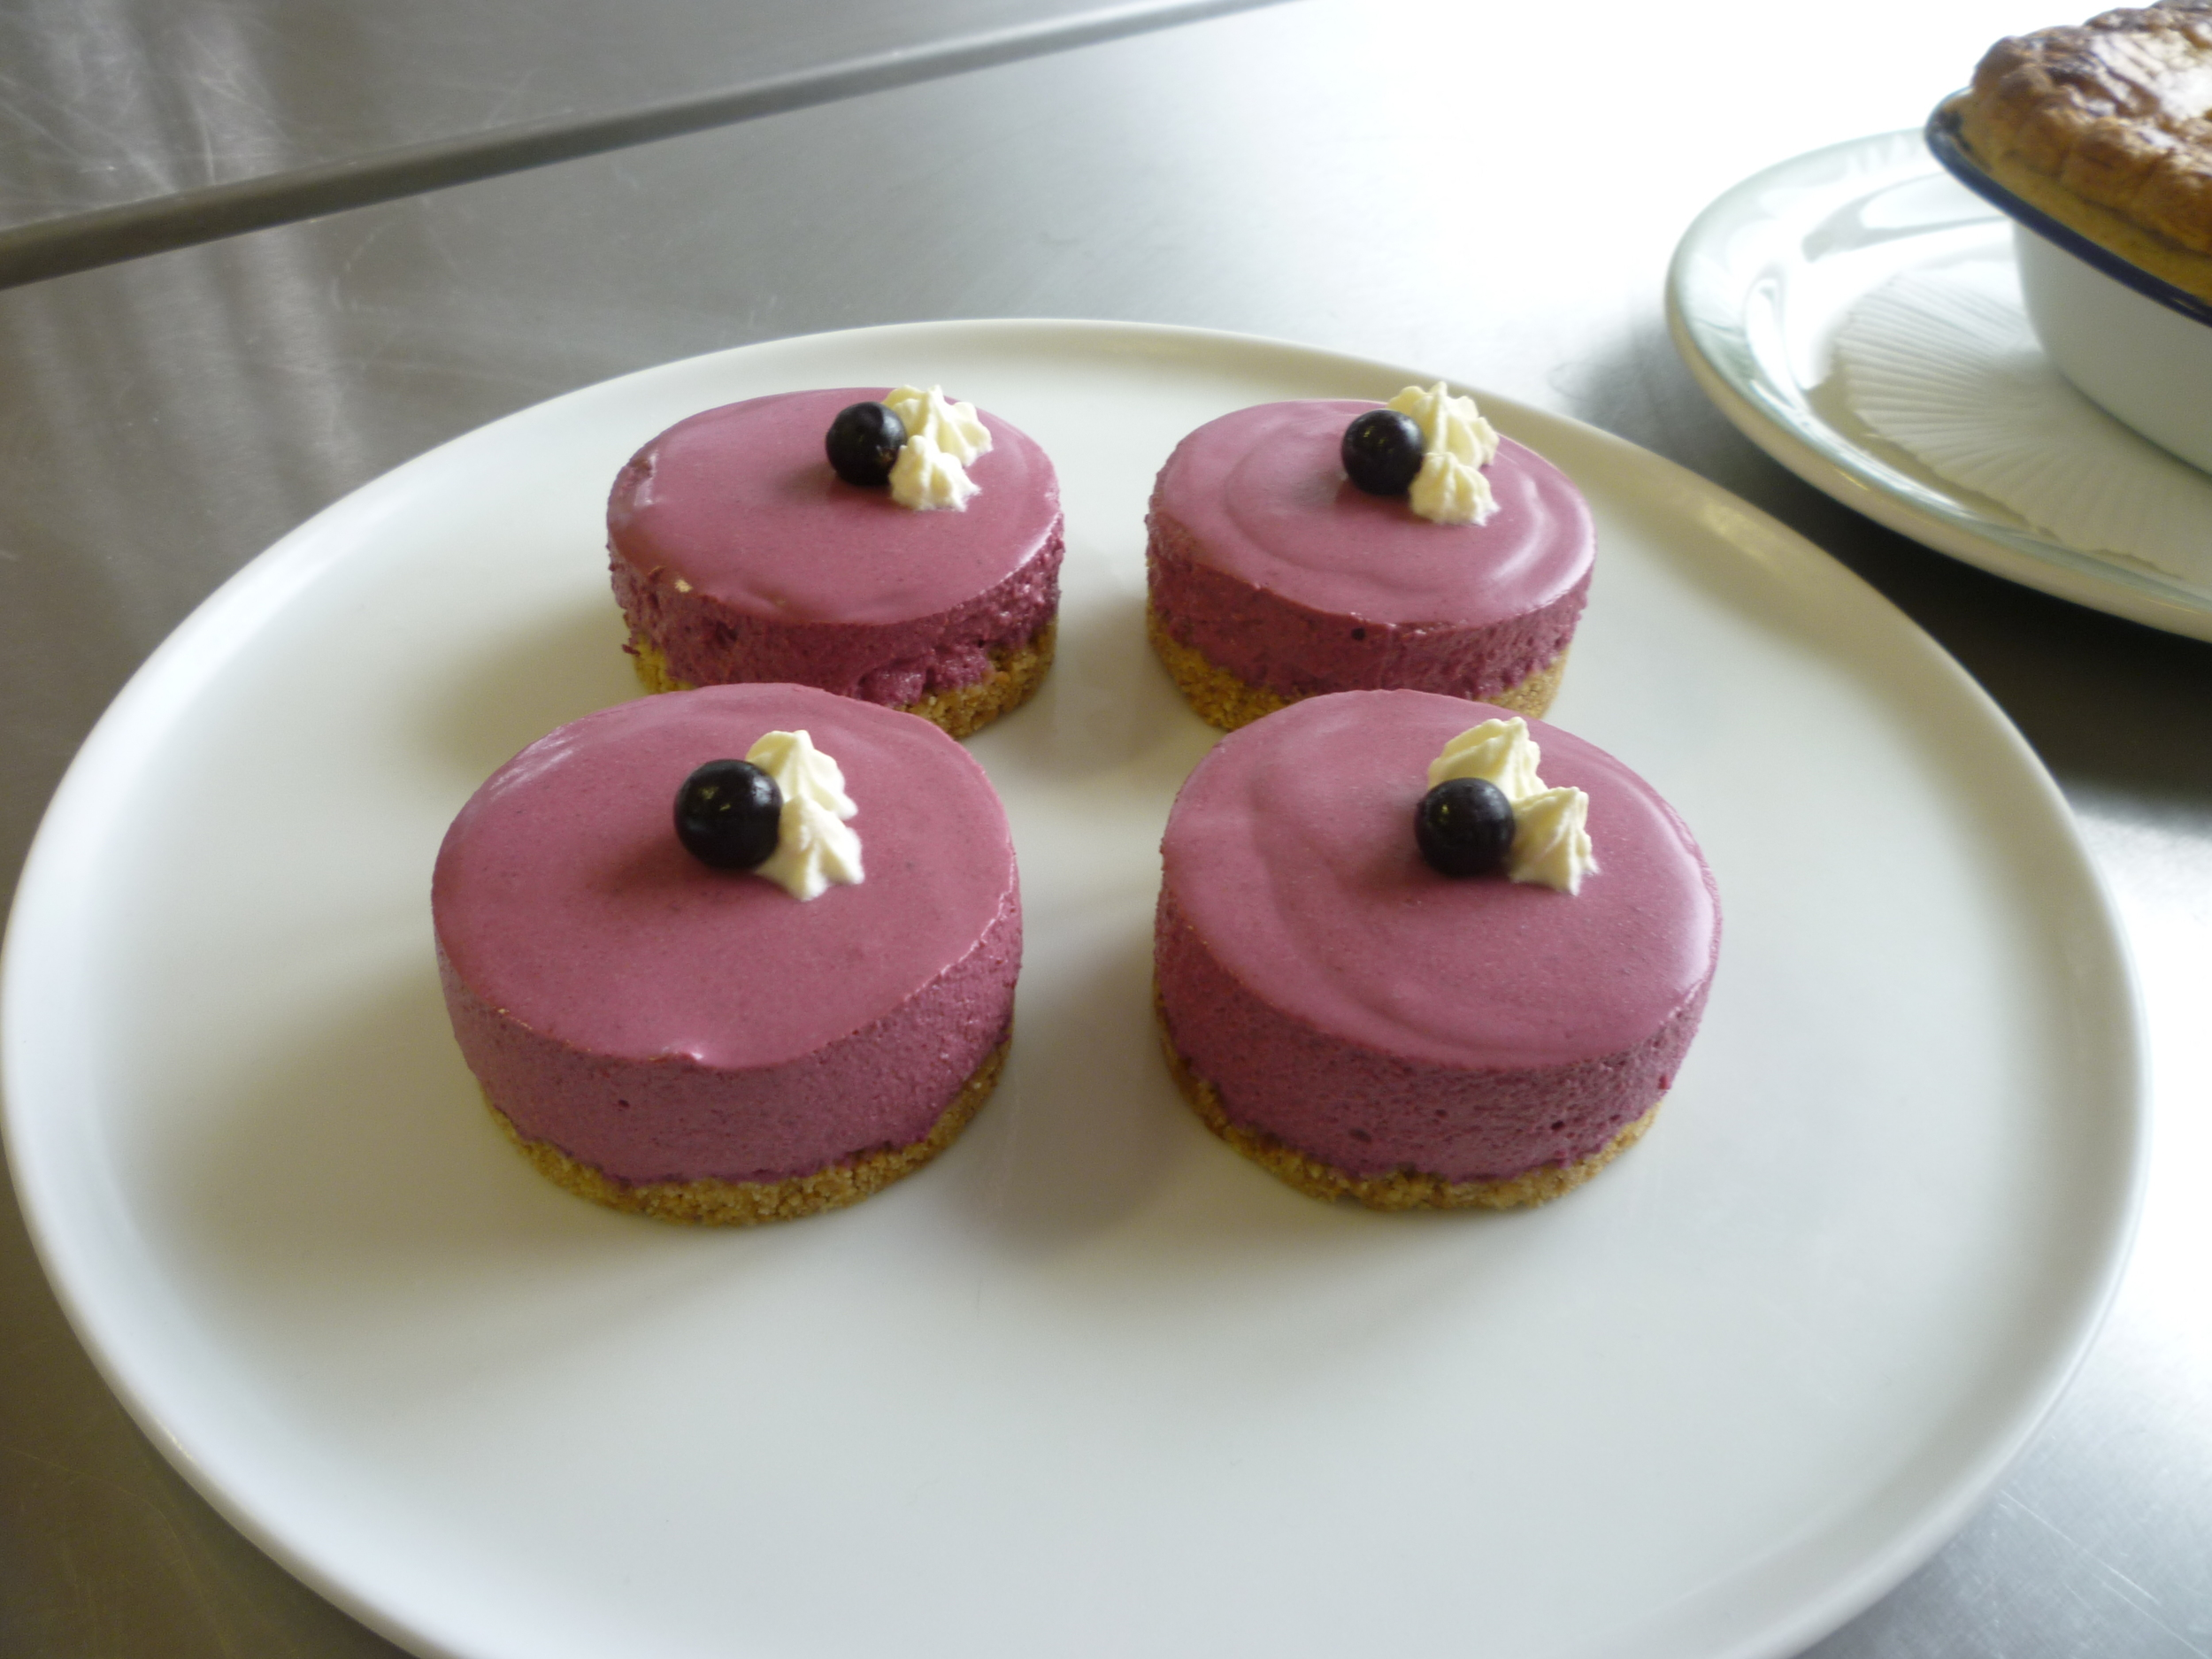 Blackcurrant cheesecakes